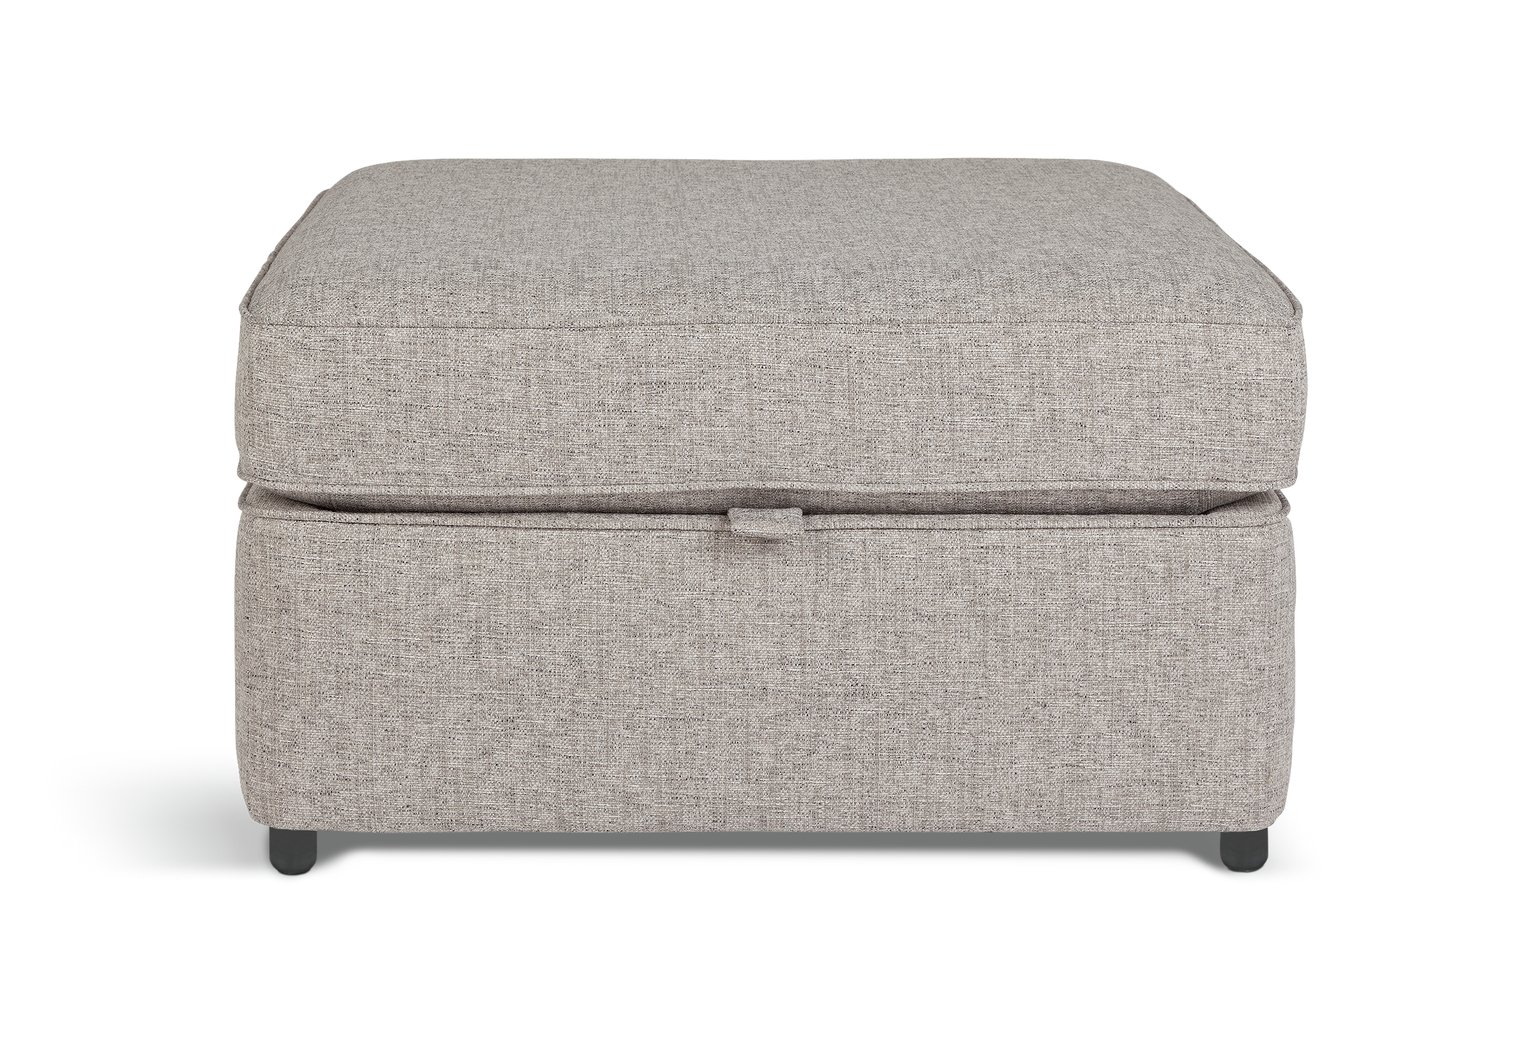 Argos Home Atticus Fabric Storage Footstool - Grey